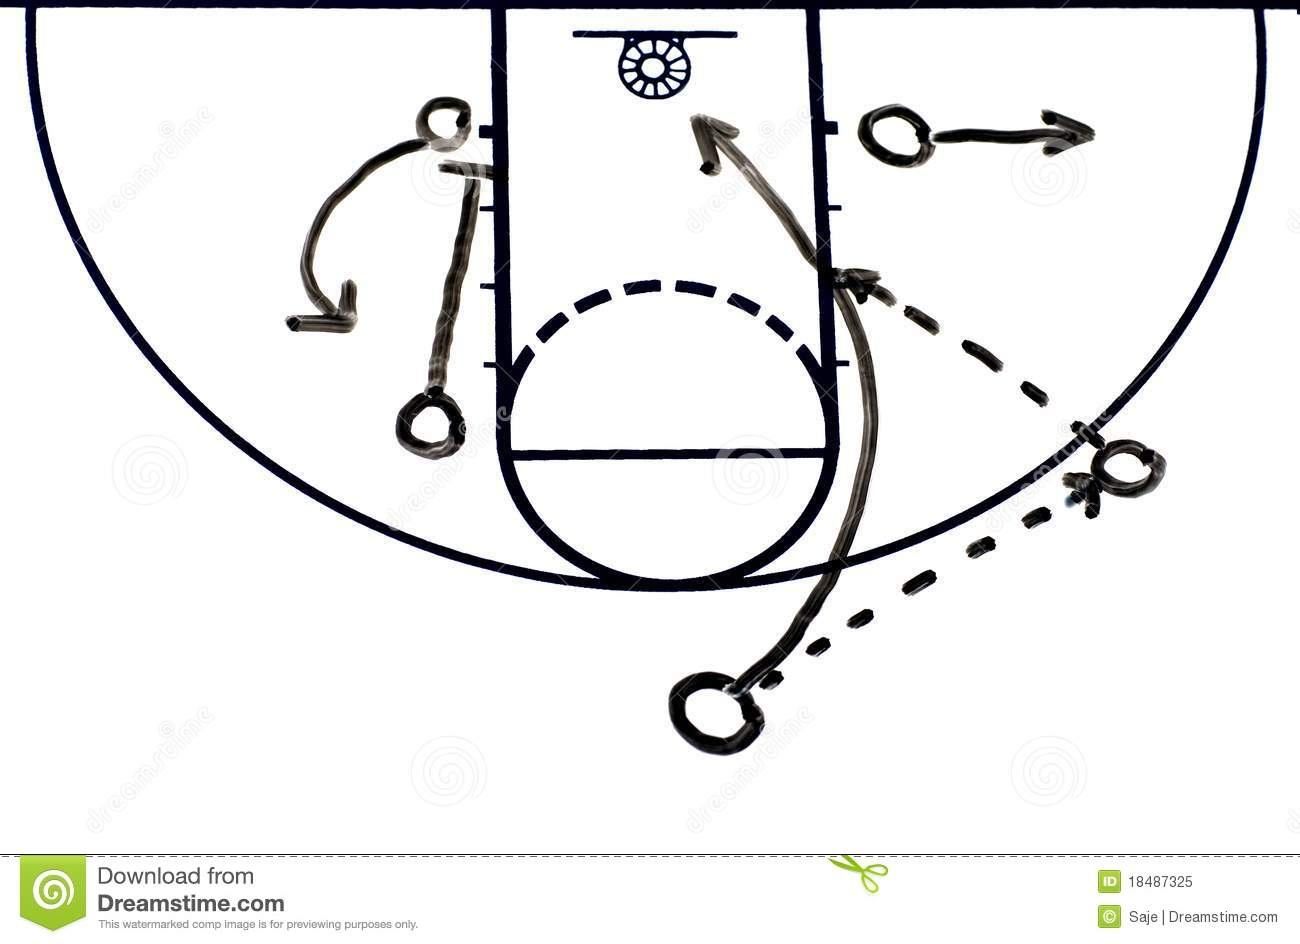 Flex Offense likewise Royalty Free Stock Photo Basketball Give Go Play Image18487325 as well Basketball Playbook Template further Michigans New Offense furthermore Blank Soccer Field Diagram. on football plays diagrams